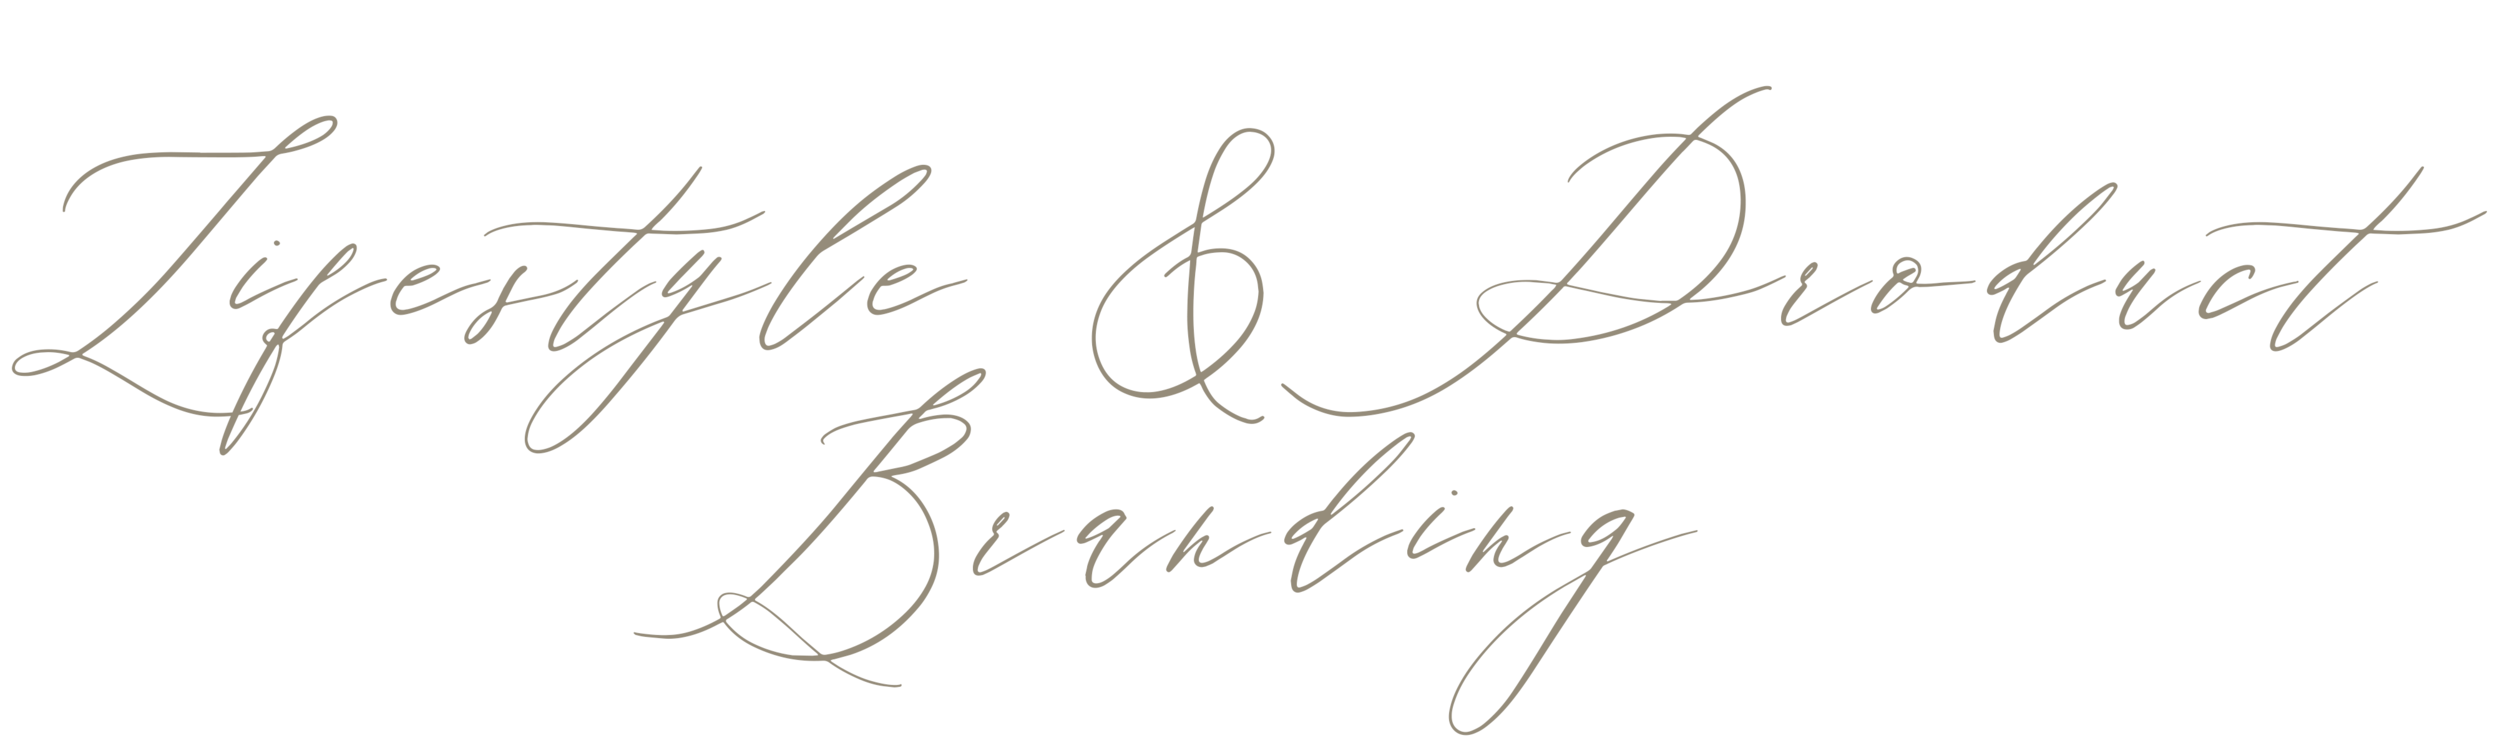 Lily & Sage | Luxury Wedding Planner | Wedding Planner UK Wedding Planner Cotswolds Wedding Planner London Wedding Planner Europe Cotswolds Wedding Planner UK Wedding Planner Wedding Stylist | Lifestyle & Product Branding.png